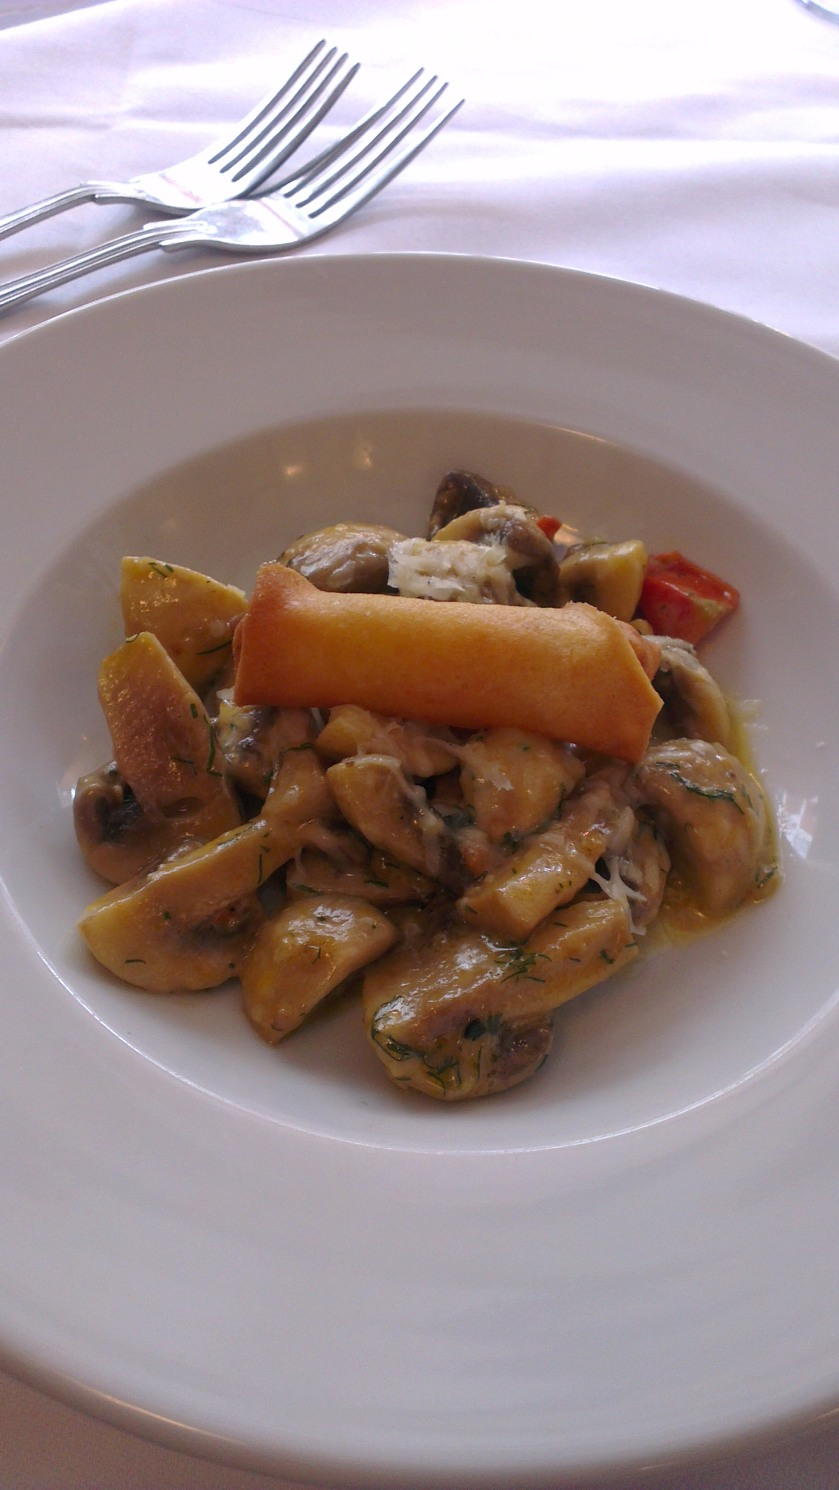 Sauteed mushrooms with a spring roll . A strange combination but it works!